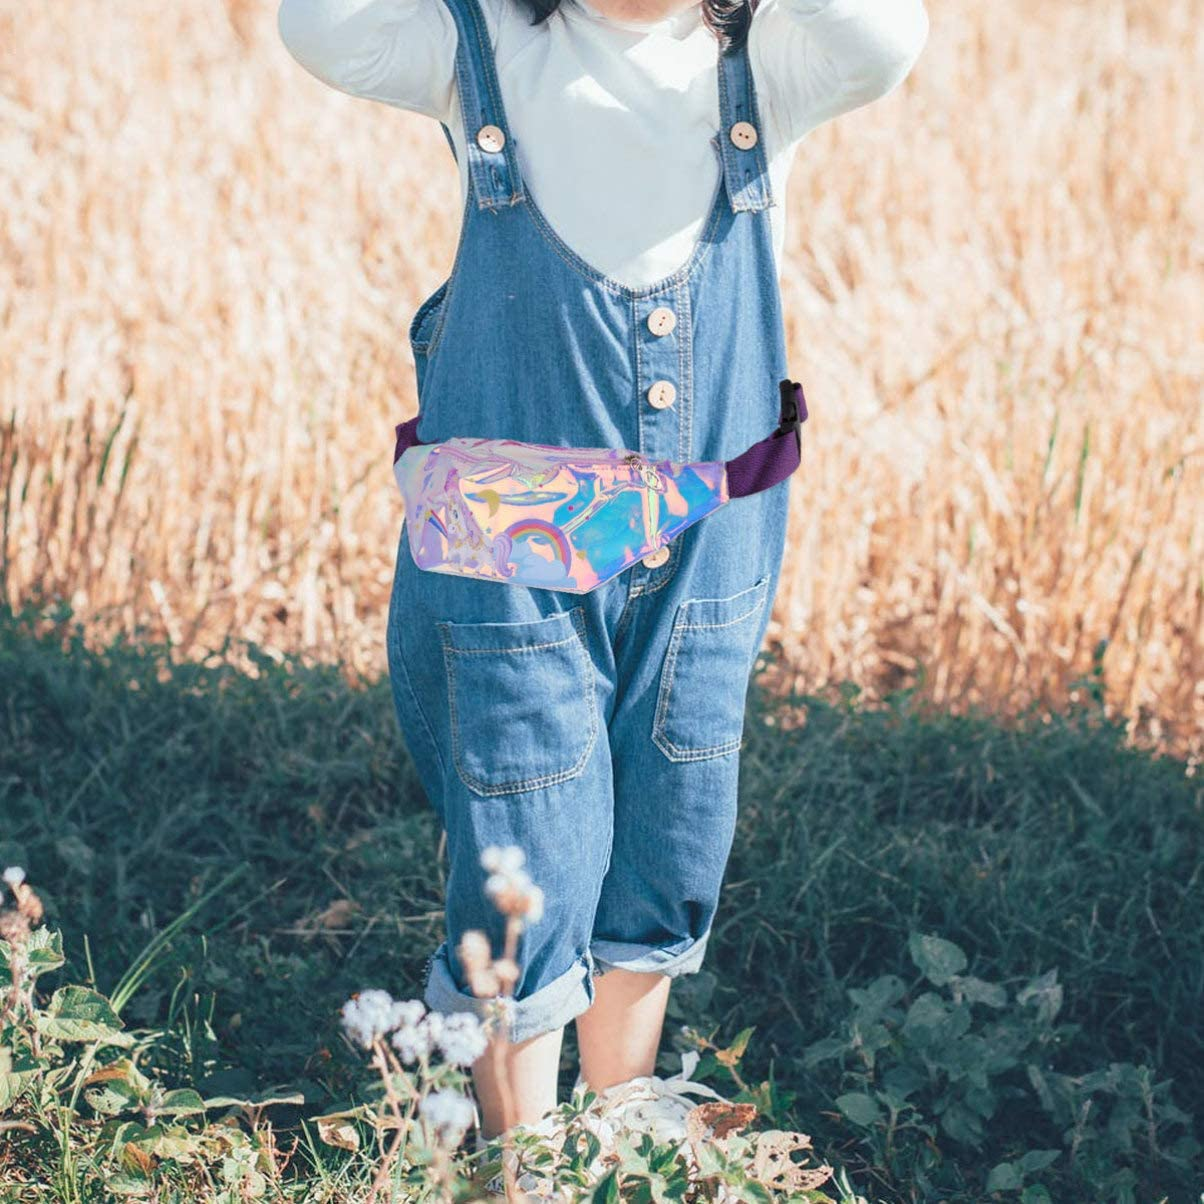 TENDYCOCO Fanny Pack Kids Holographic Chest Bag Translucent Unicorn Waist Bag Cartoon Bumbag for Baby Kids Pink